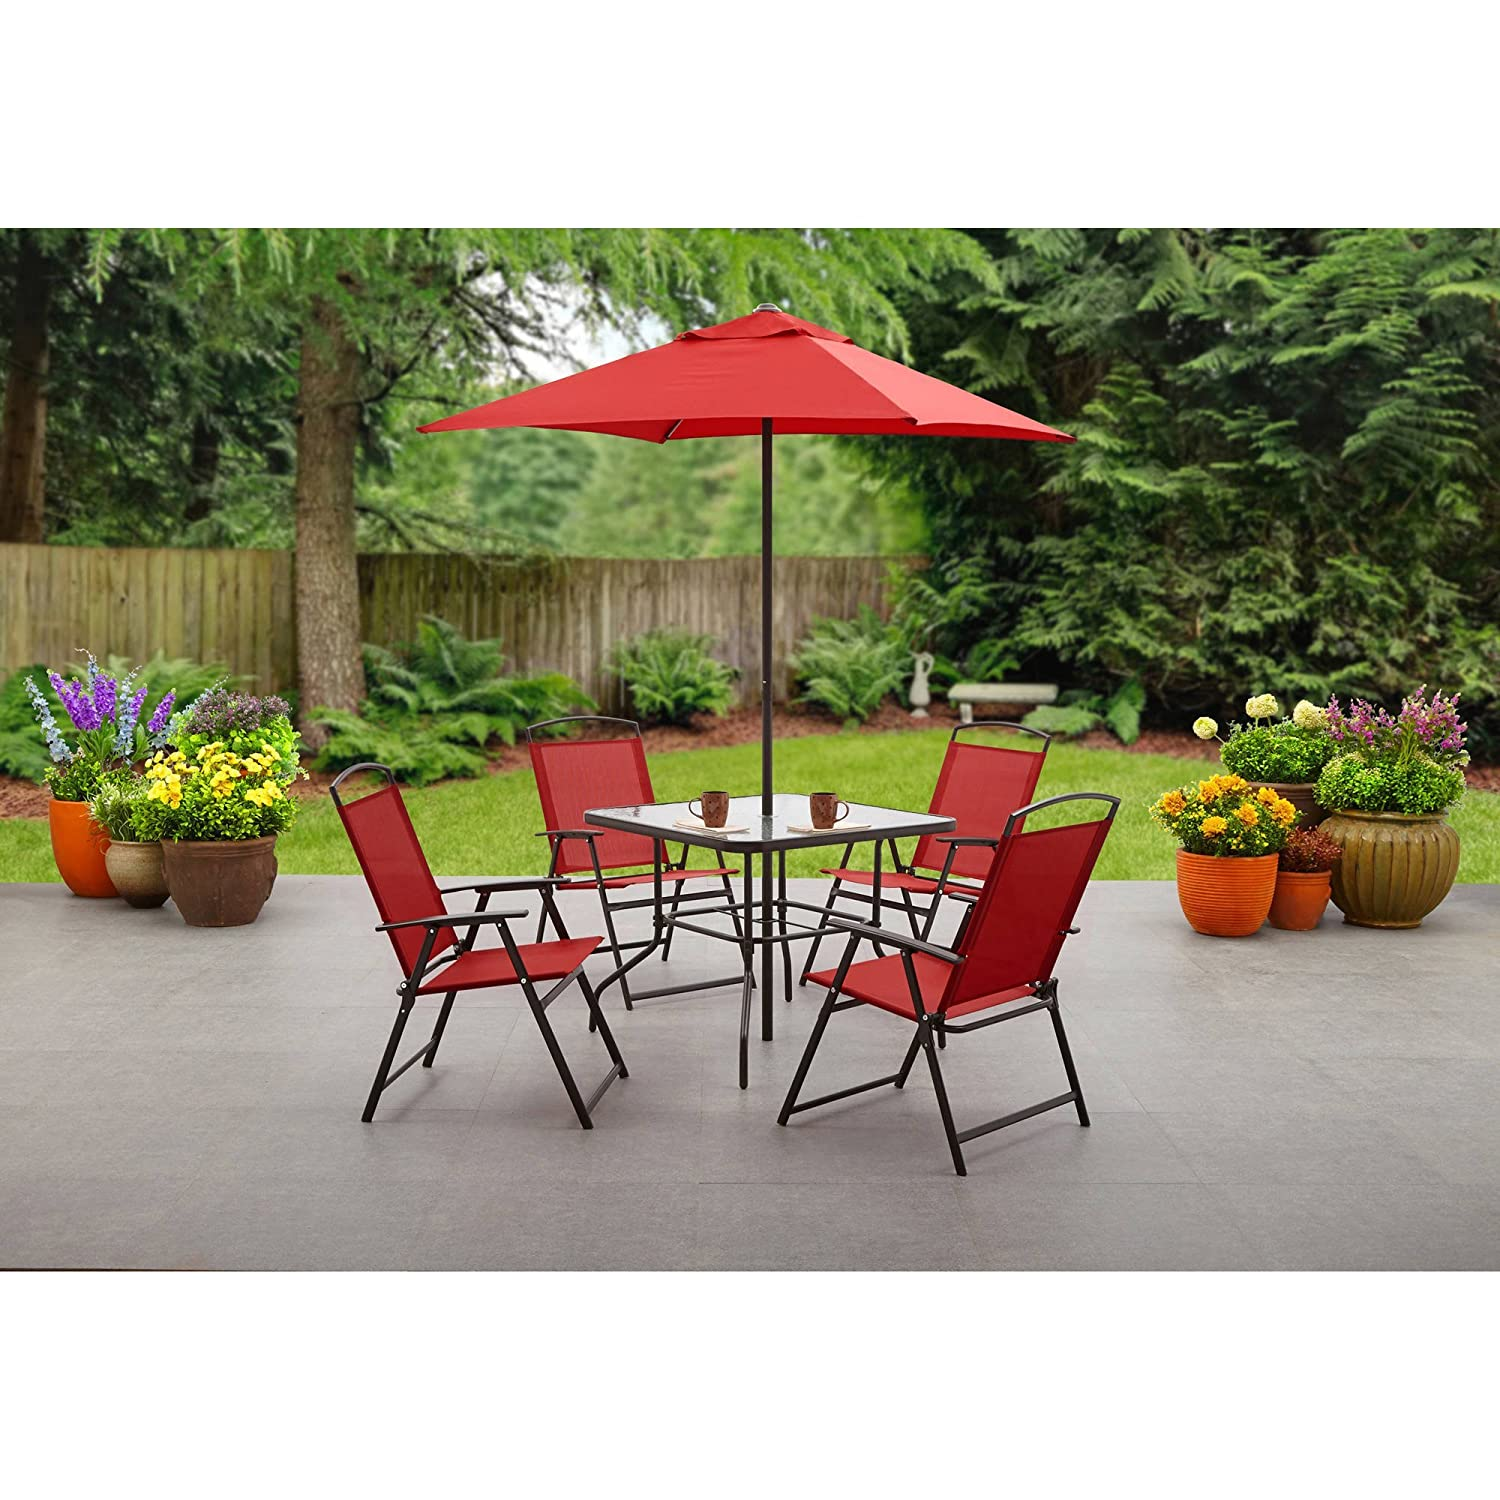 Mainstays Albany Lane 6-Piece Folding Dining Set Includes Dining table, Folding chairs and Umbrella , Red